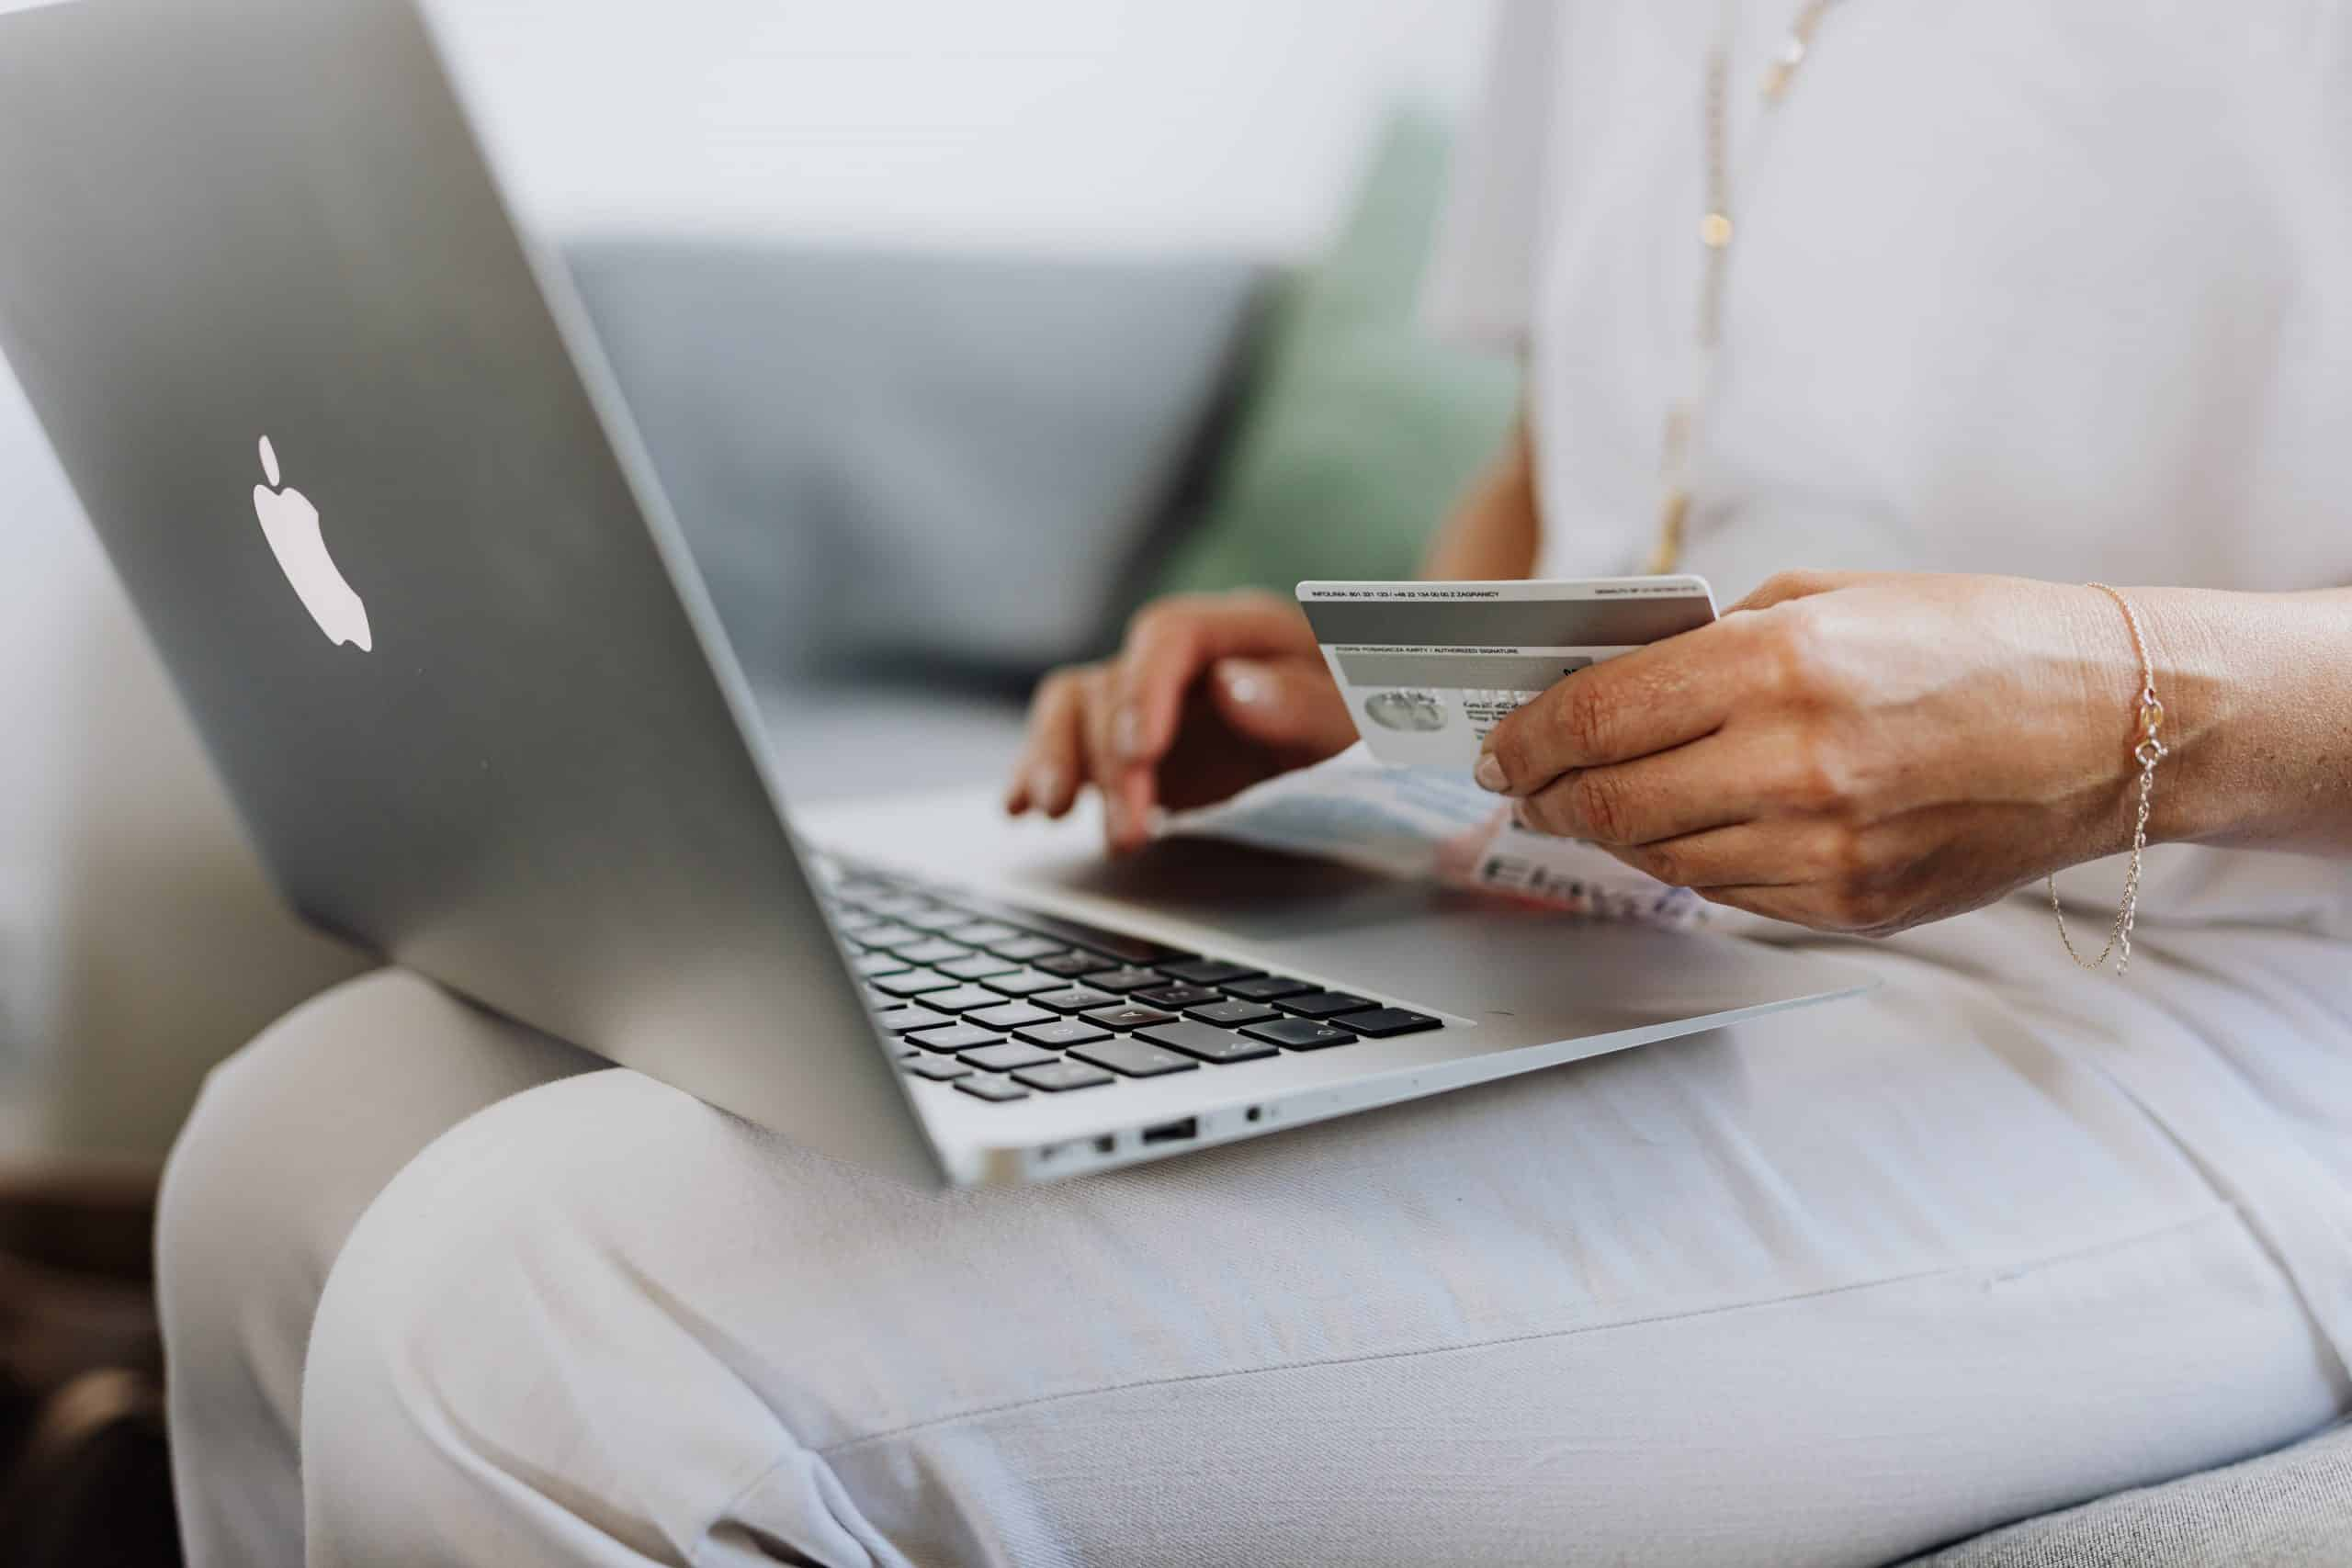 USING VISA GIFT CARDS ON AMAZON FOR PARTIAL PAYMENTS